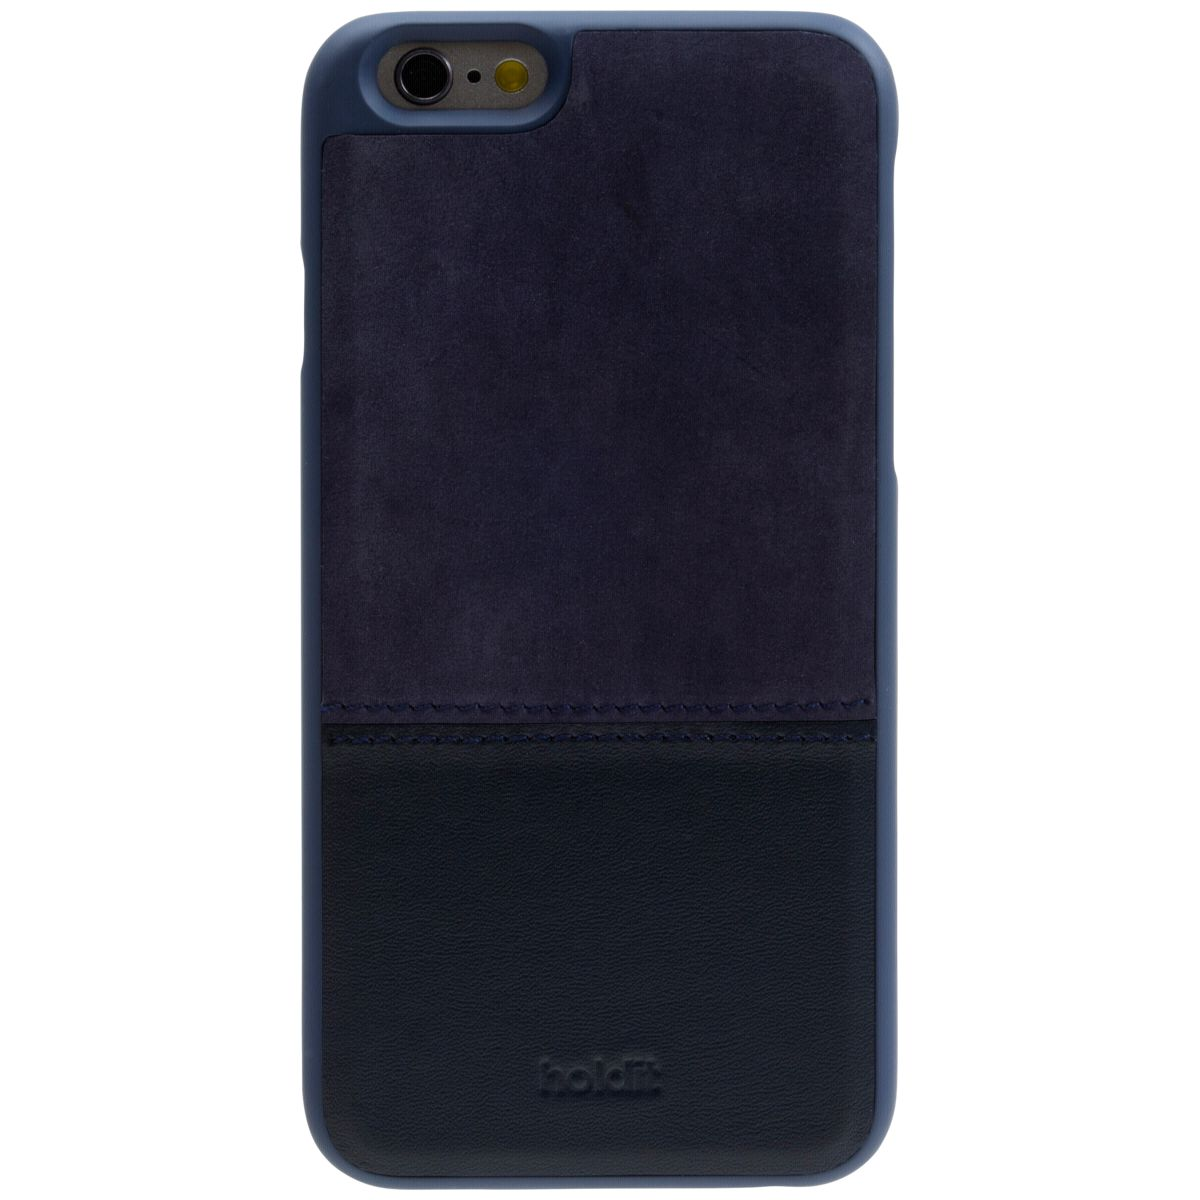 7d39fc644c955 holdit Handytaschen »Selected Case for iPhone 6 6s Blue leather suede«